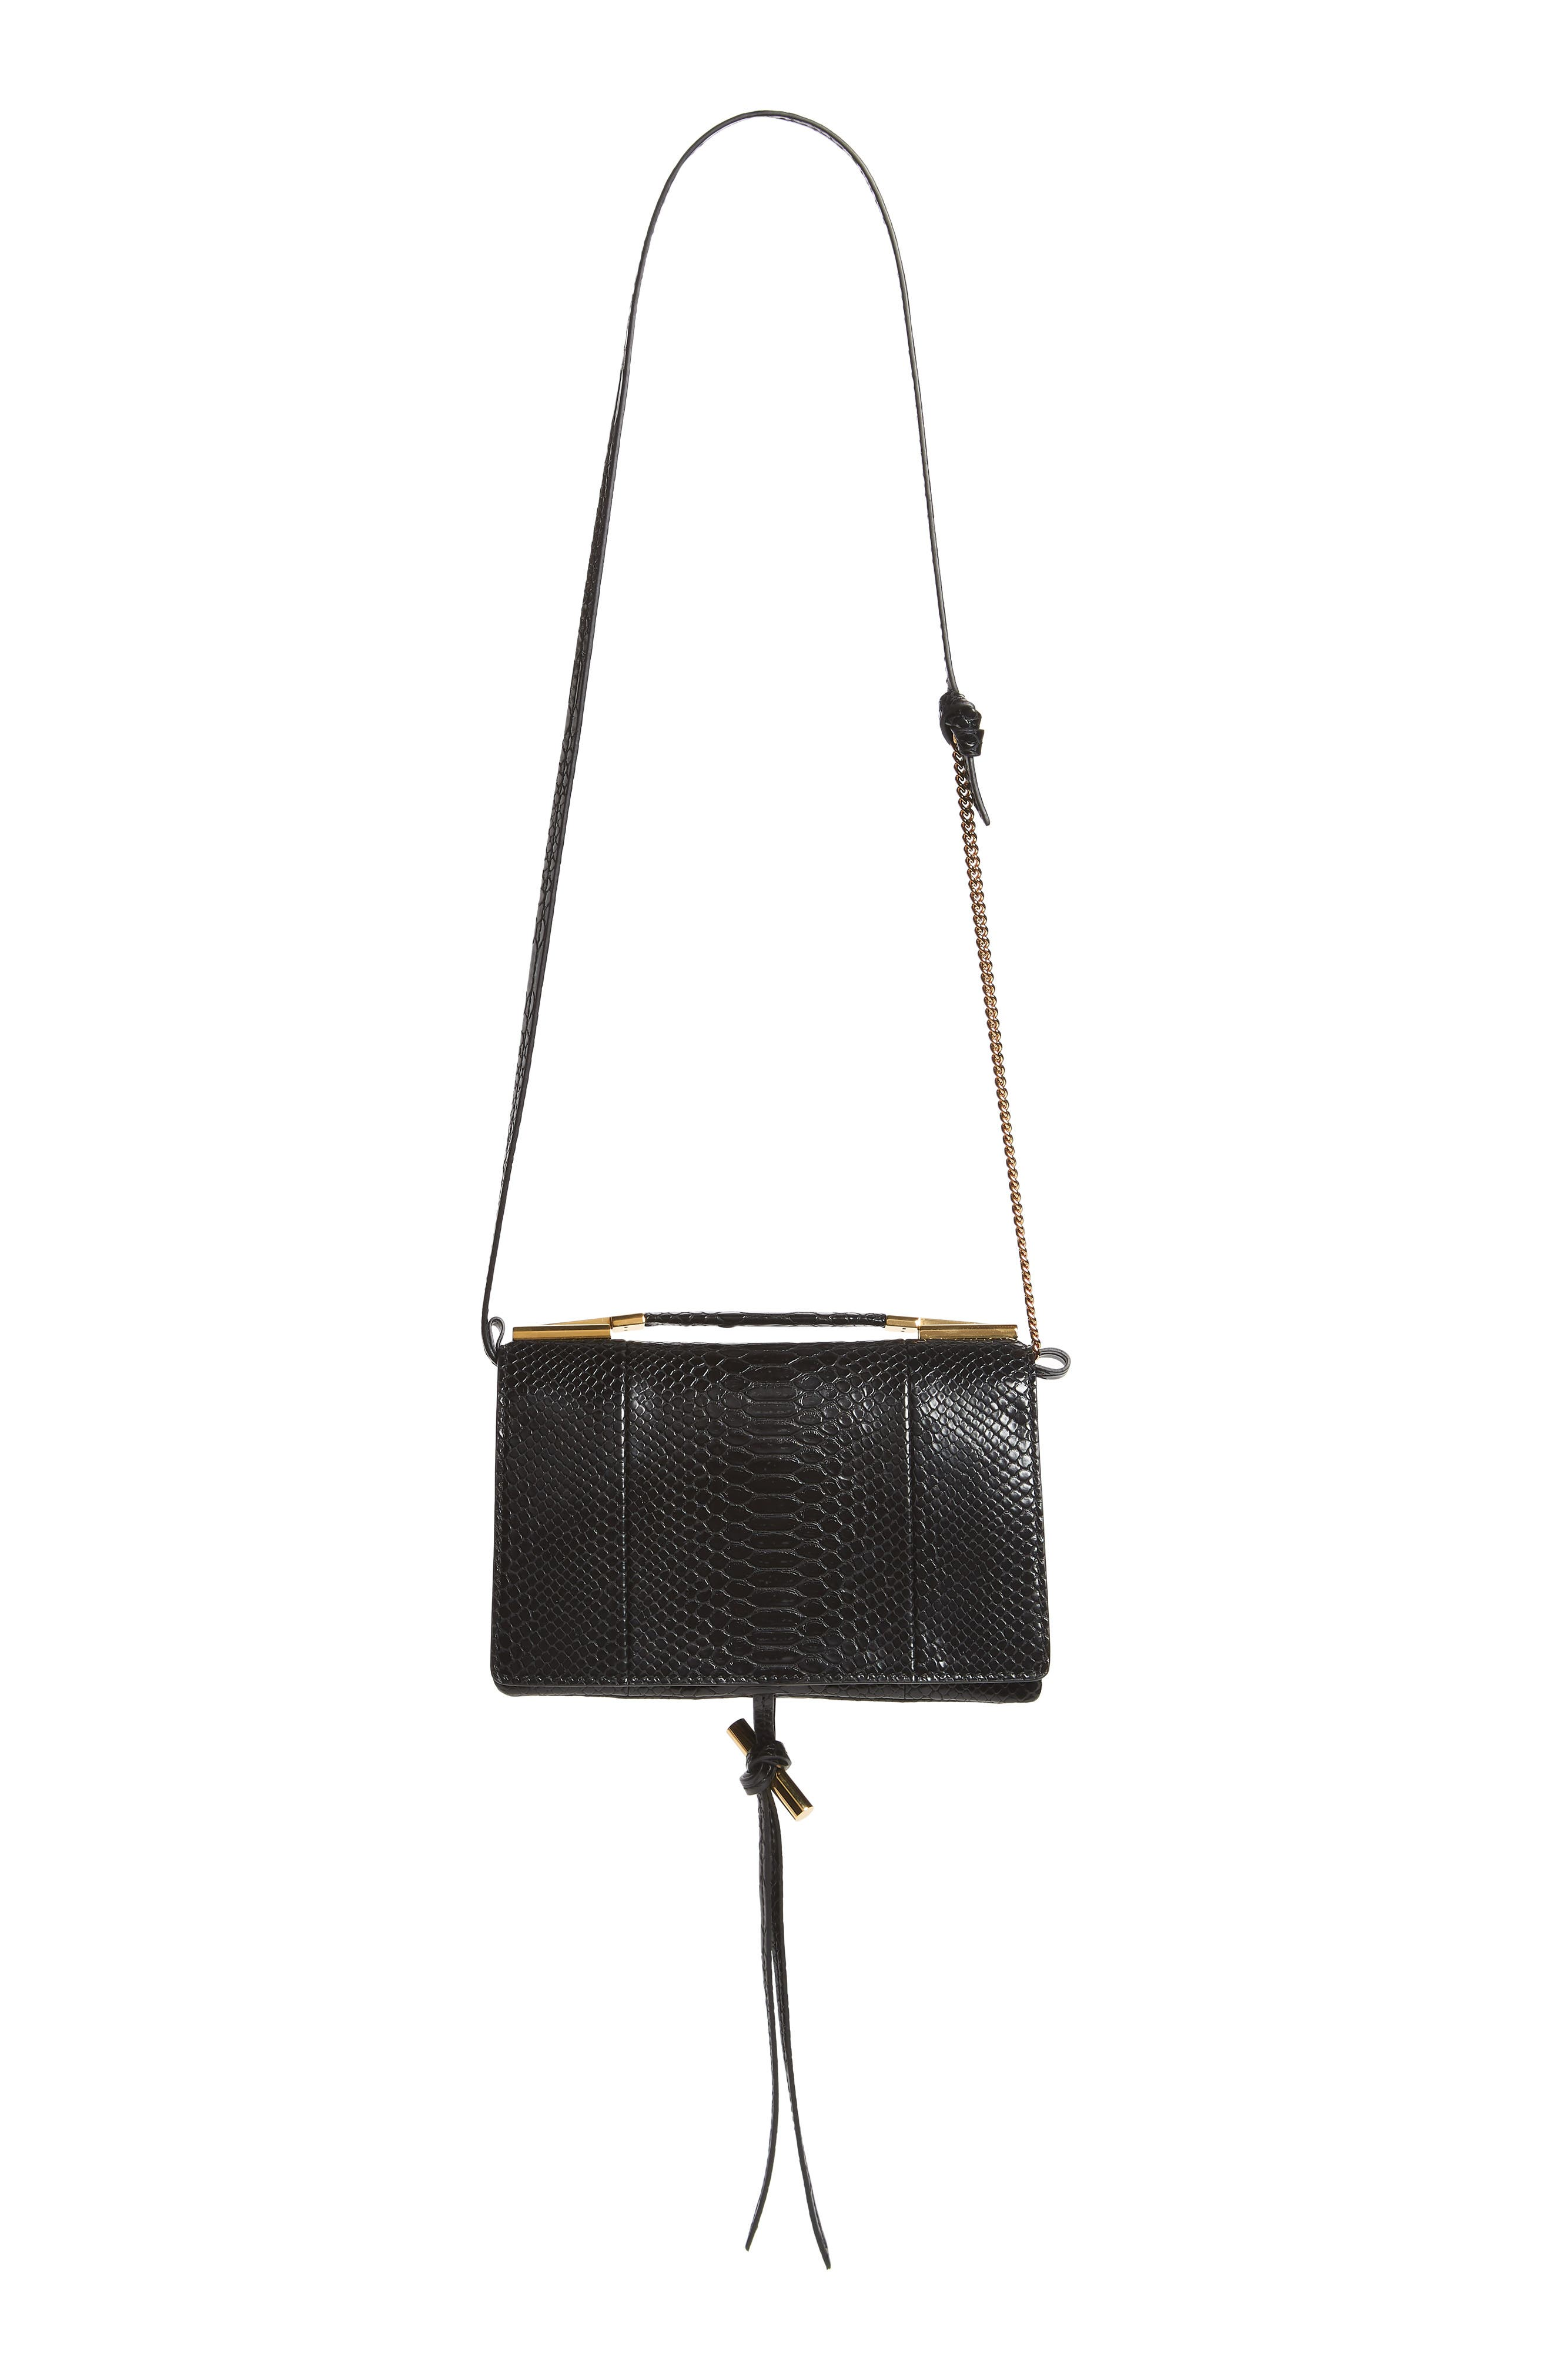 Main Image - Stella McCartney Small Flo Alter Snake Faux Leather Shoulder Bag